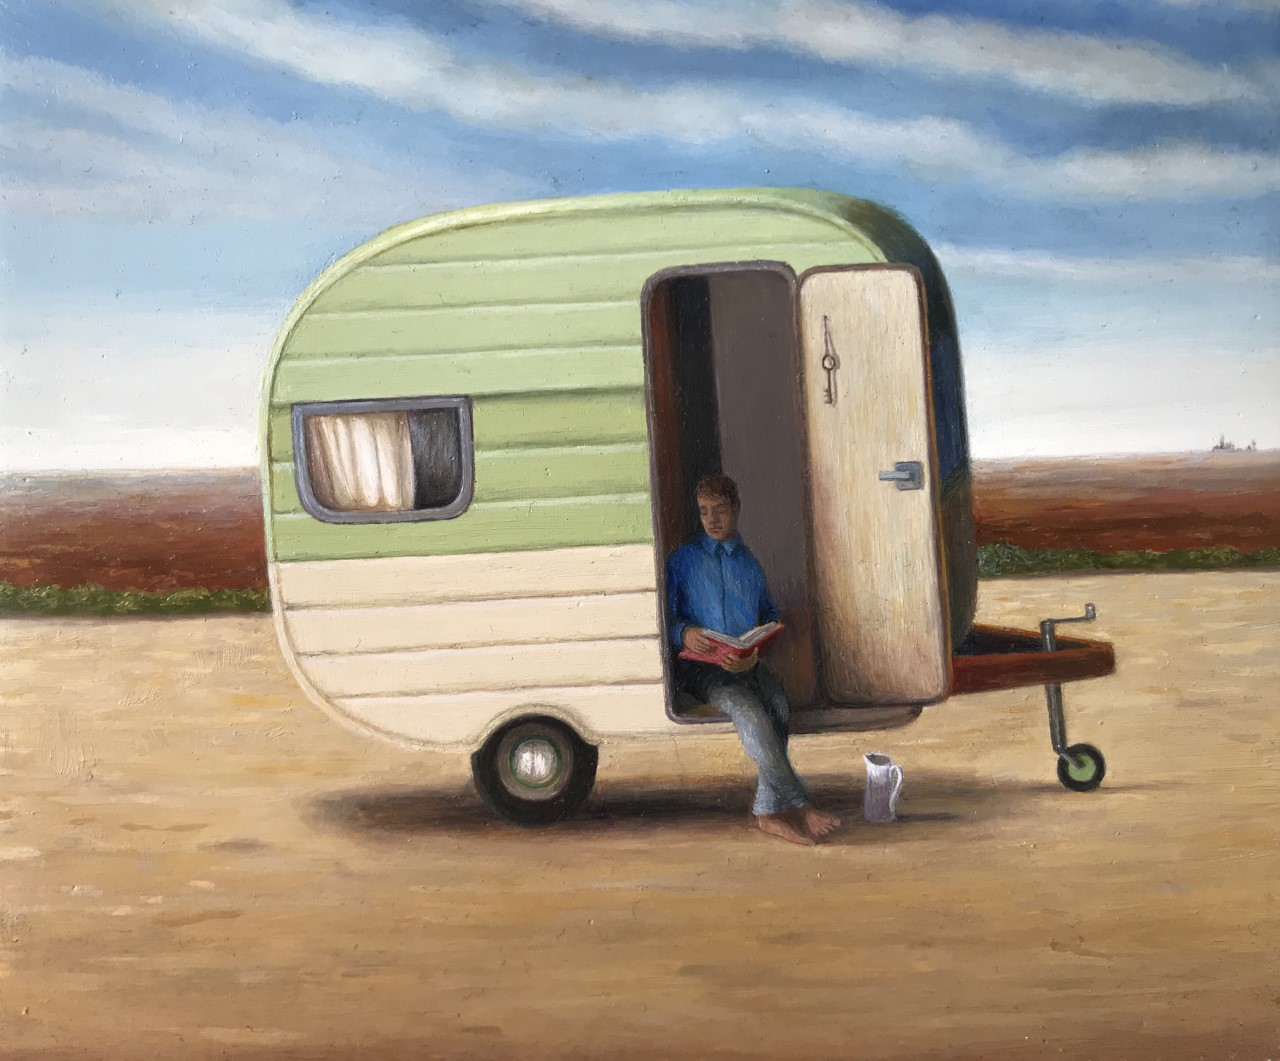 "'Caravan poem', 2017, oil on gessoed panel, 5"" x 6"""